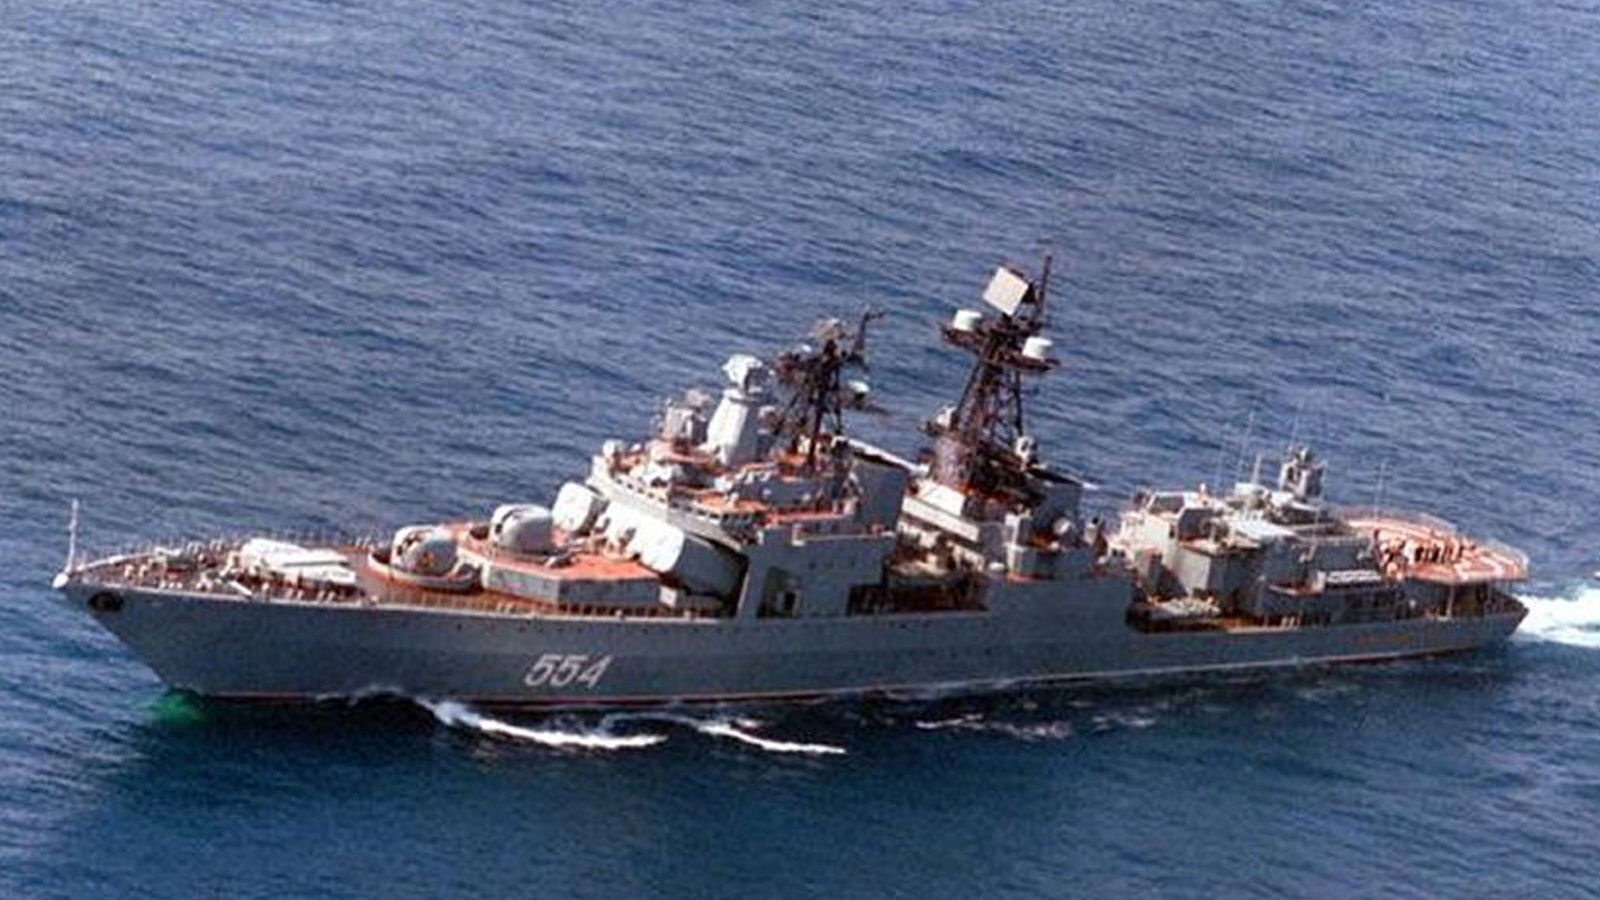 Russia says it chased US warship in row over territorial waters in Sea of Japan